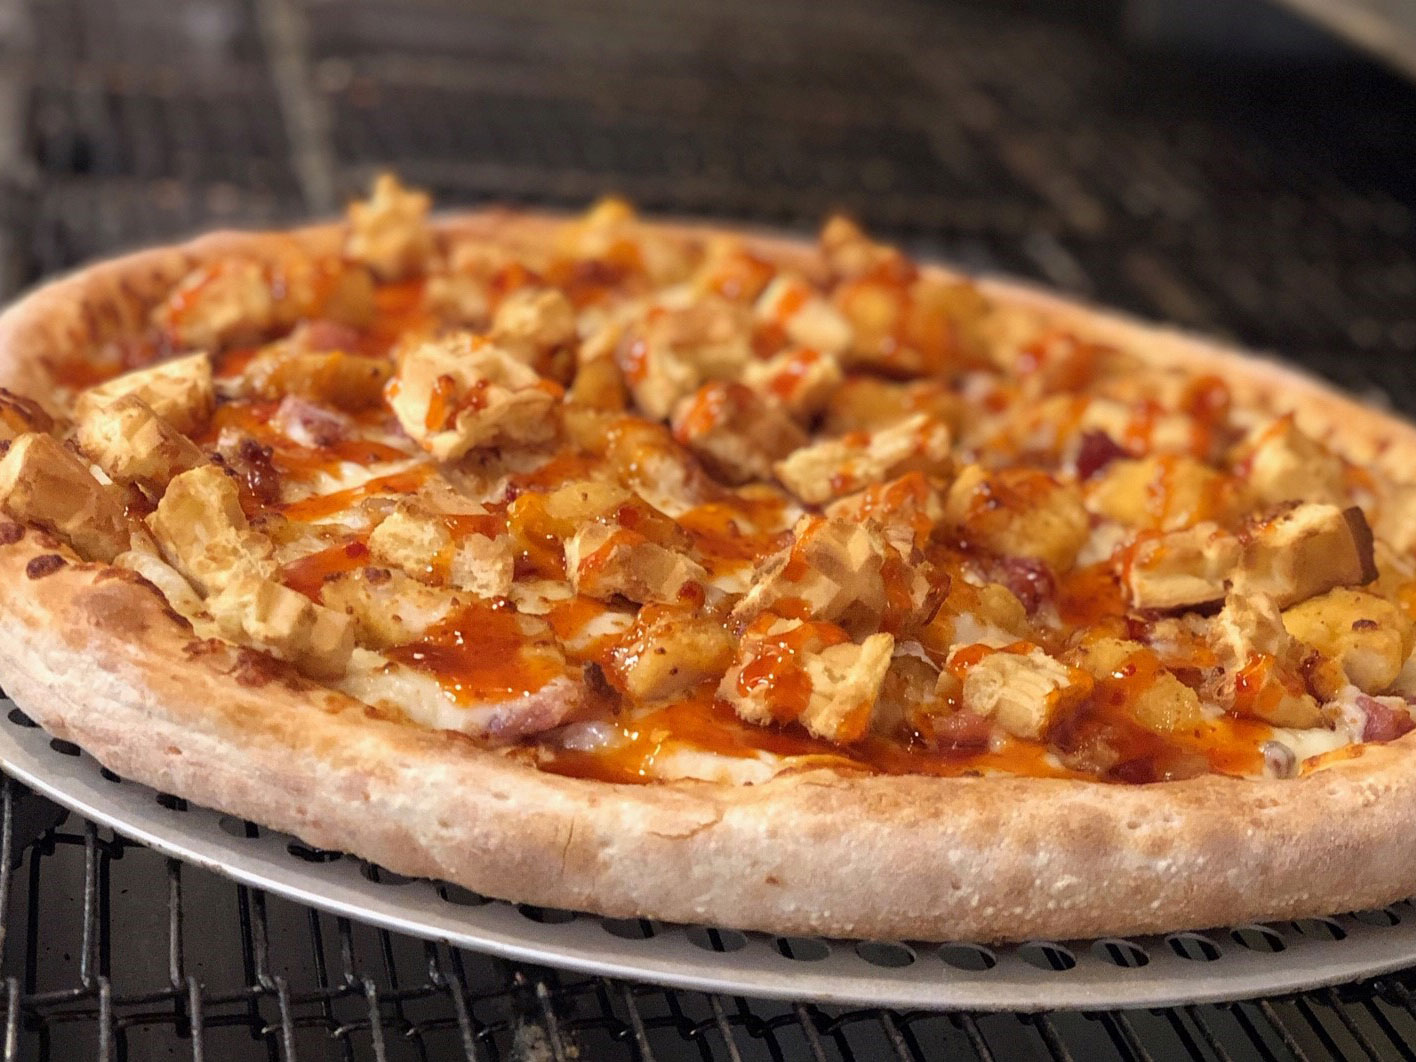 Papa John's to Put Chicken and Waffles Pizza on the Menu